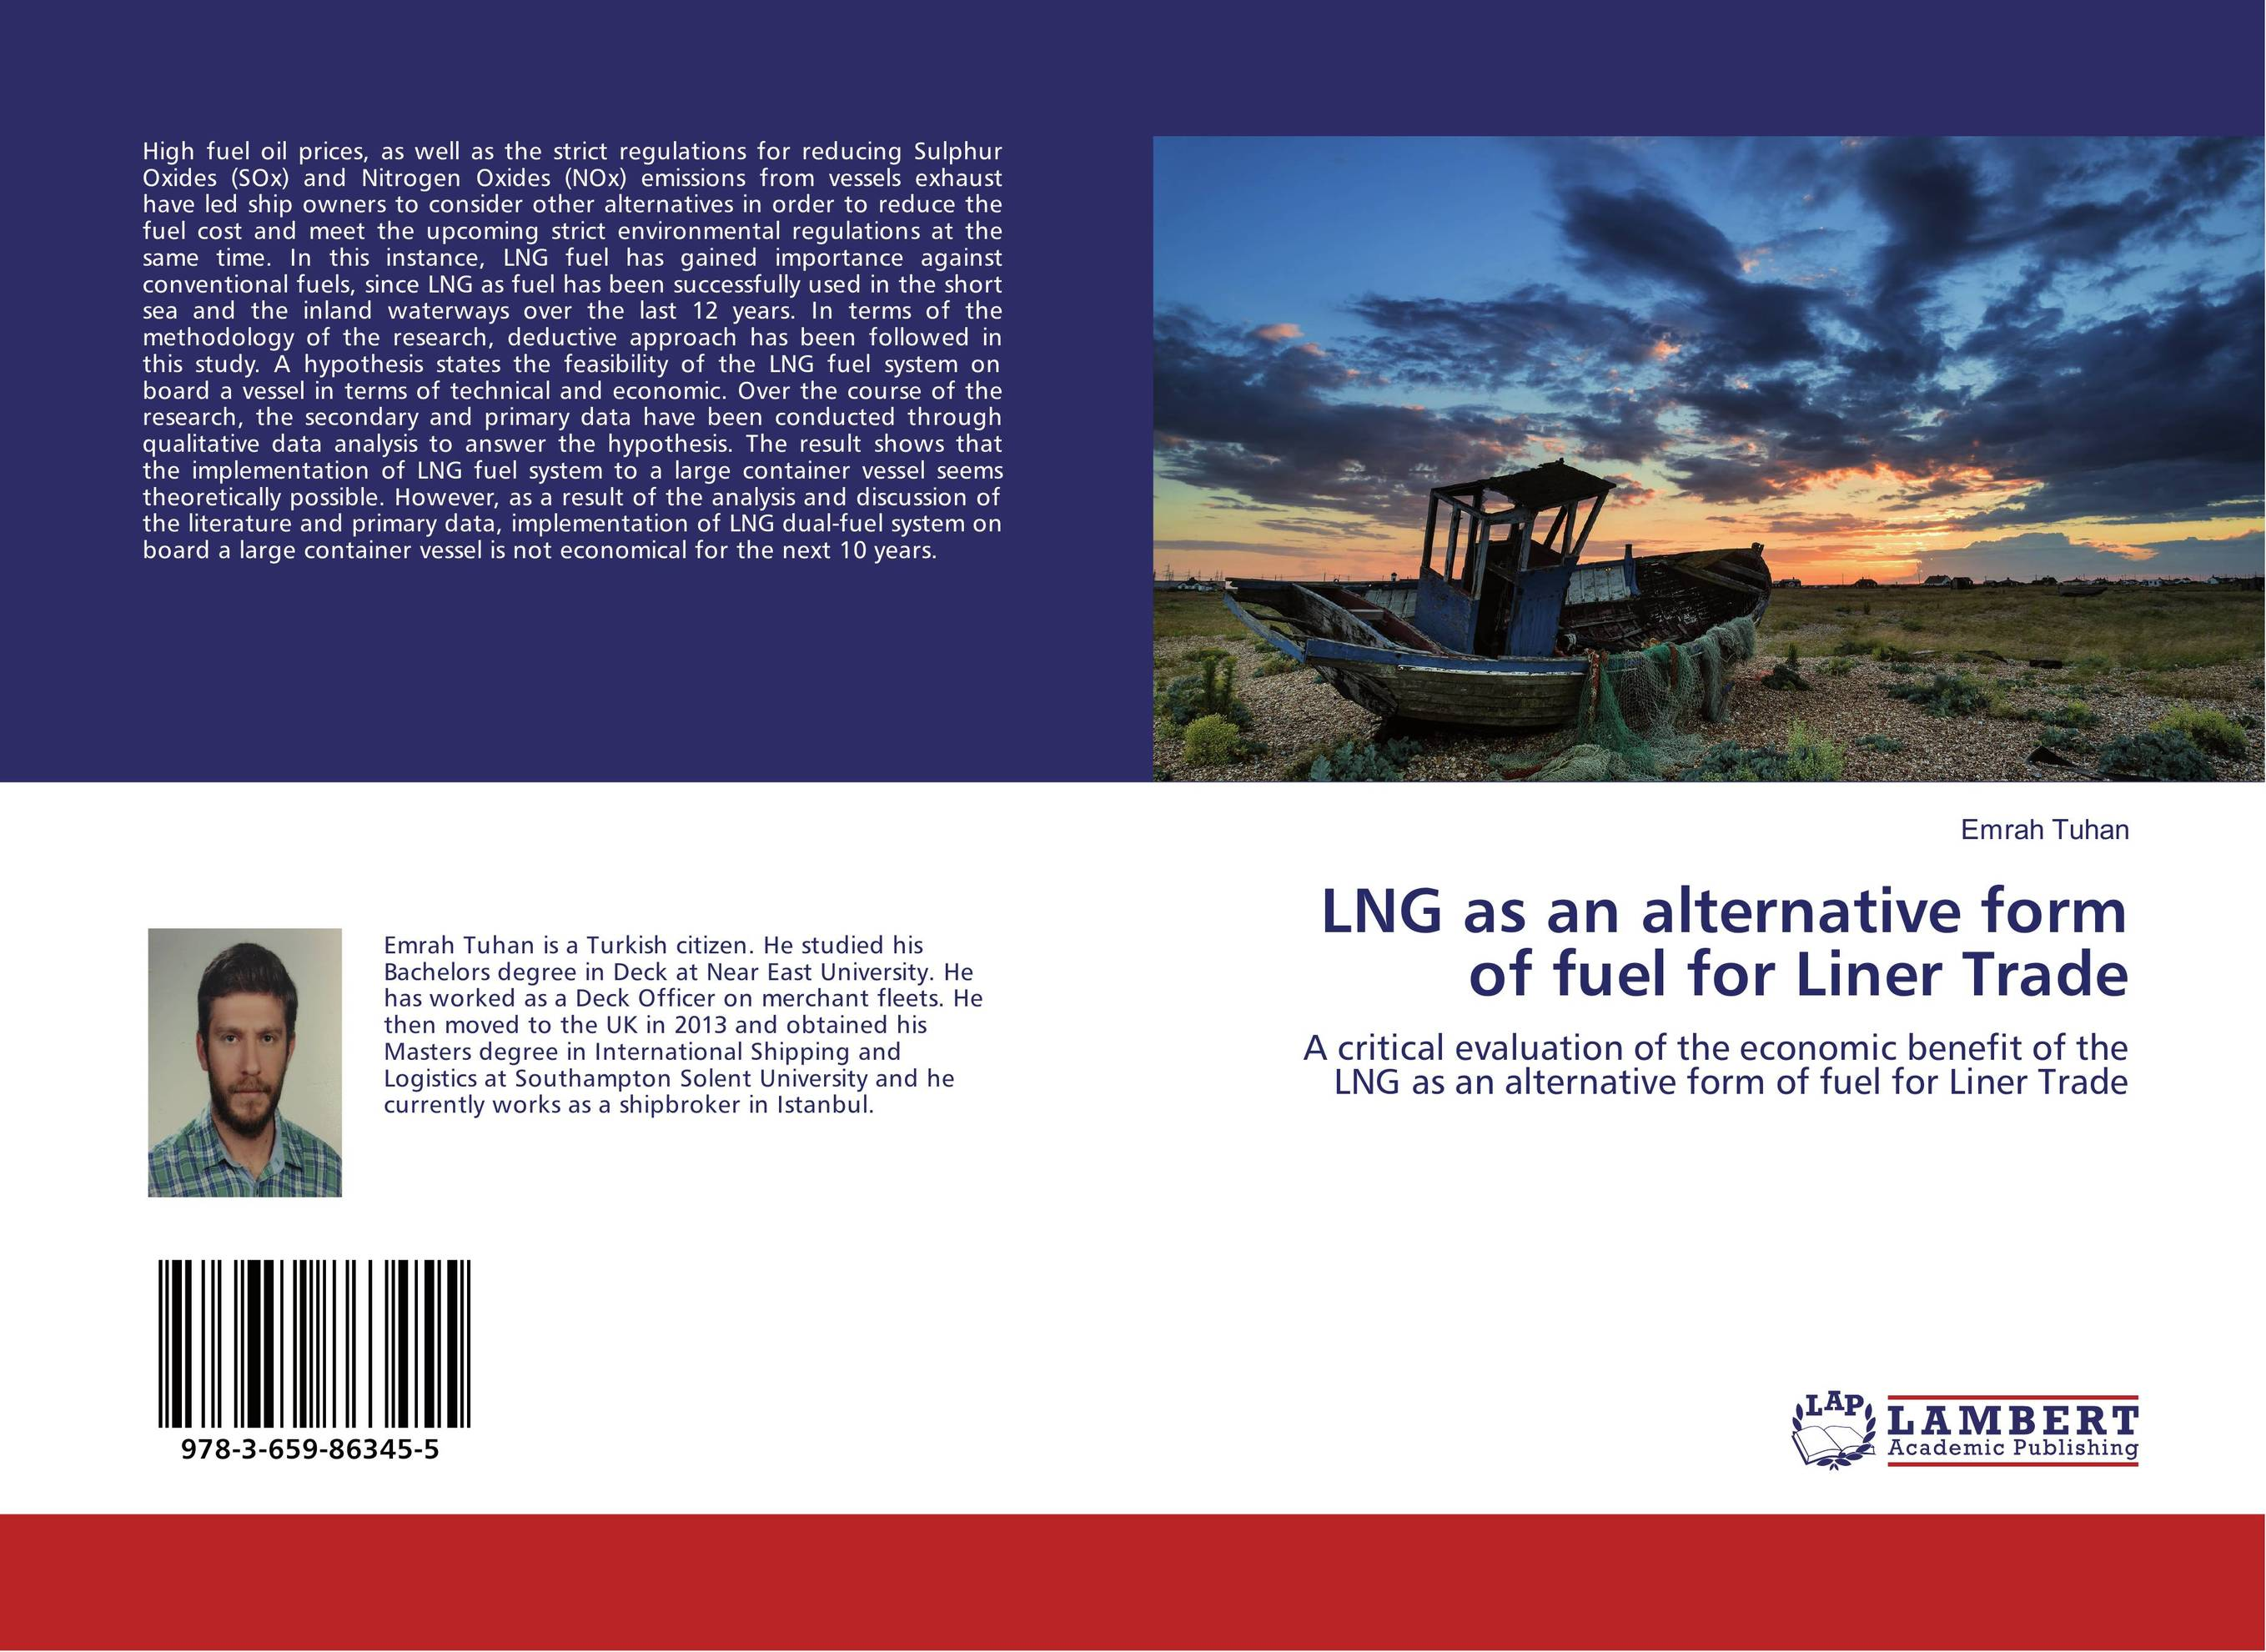 LNG as an alternative form of fuel for Liner Trade